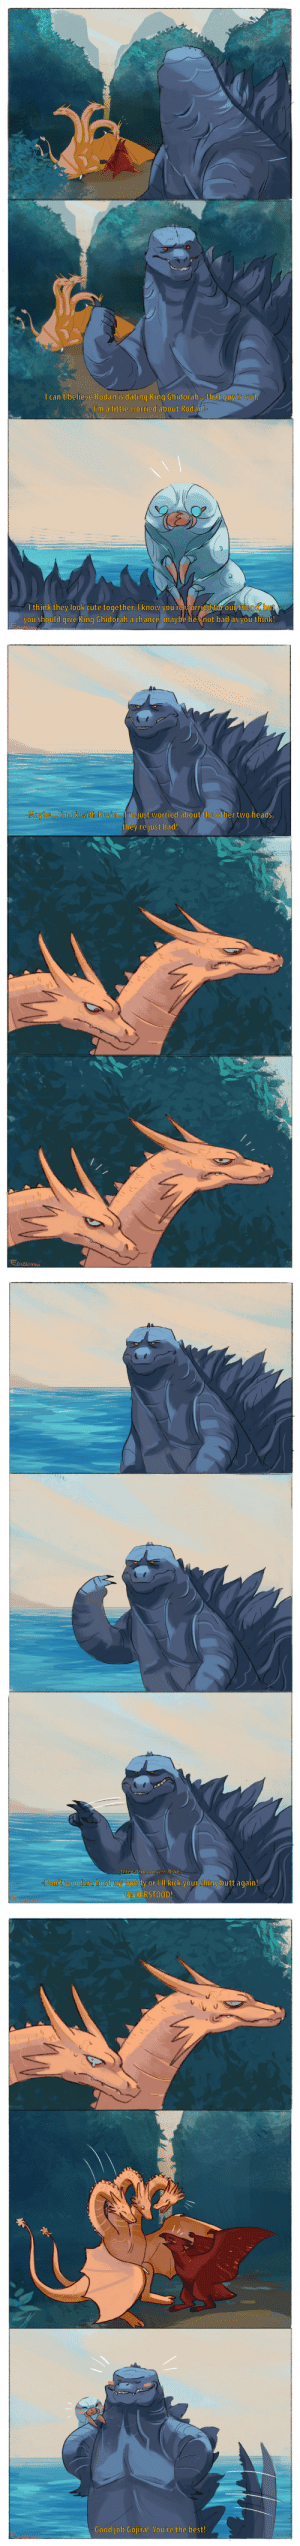 skogurumi:  .。*゚+.*.。Kaiju's dating on Monster Island .。*゚+.*.。 Made this little comic from the last drawing _( :3」∠)_: -I can't believe Rodan is dating King Ghidorah that guy is evil  I'm a little worried about Rodan!  -I think they look cute together. I know you're worried for our friend, but  you should give King Ghidorah a chance, maybe he's not bad as you think!   -Maybe...l'm ok with Kevin..d'mjust worried about the other two heads,  they're just bad!  EoUSUmm   telepathic conversation  Don't you dare hurt my buddy or I'll kick your shiny butt again!  UNDERSTOOD!   -Good job Gojira! You're the best! skogurumi:  .。*゚+.*.。Kaiju's dating on Monster Island .。*゚+.*.。 Made this little comic from the last drawing _( :3」∠)_